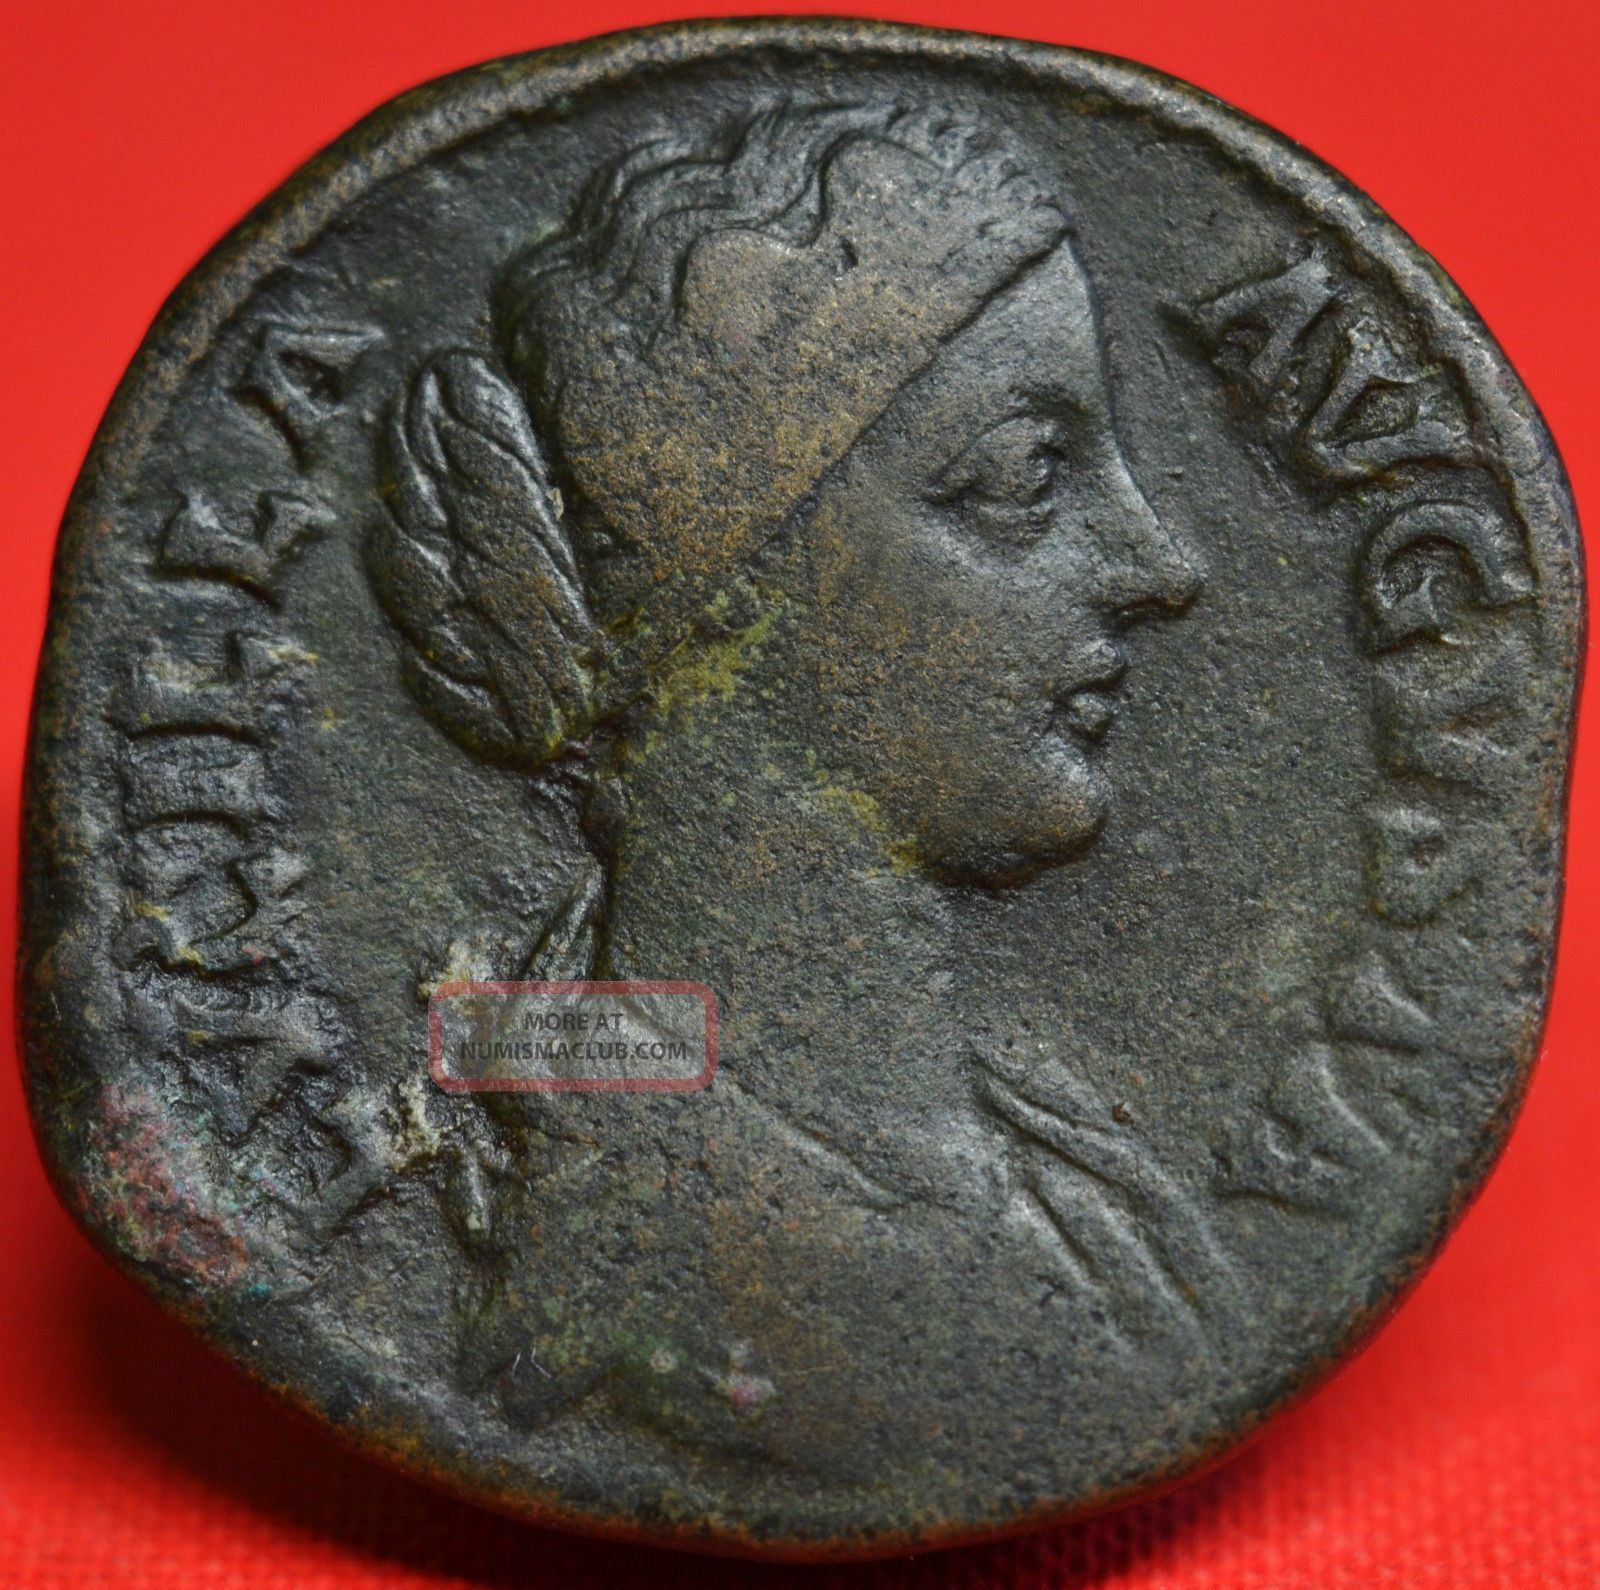 Lucilla,  Scarce Sestertius: Pietas.  Portrait Ad 164 - 6.  Vf. Coins: Ancient photo